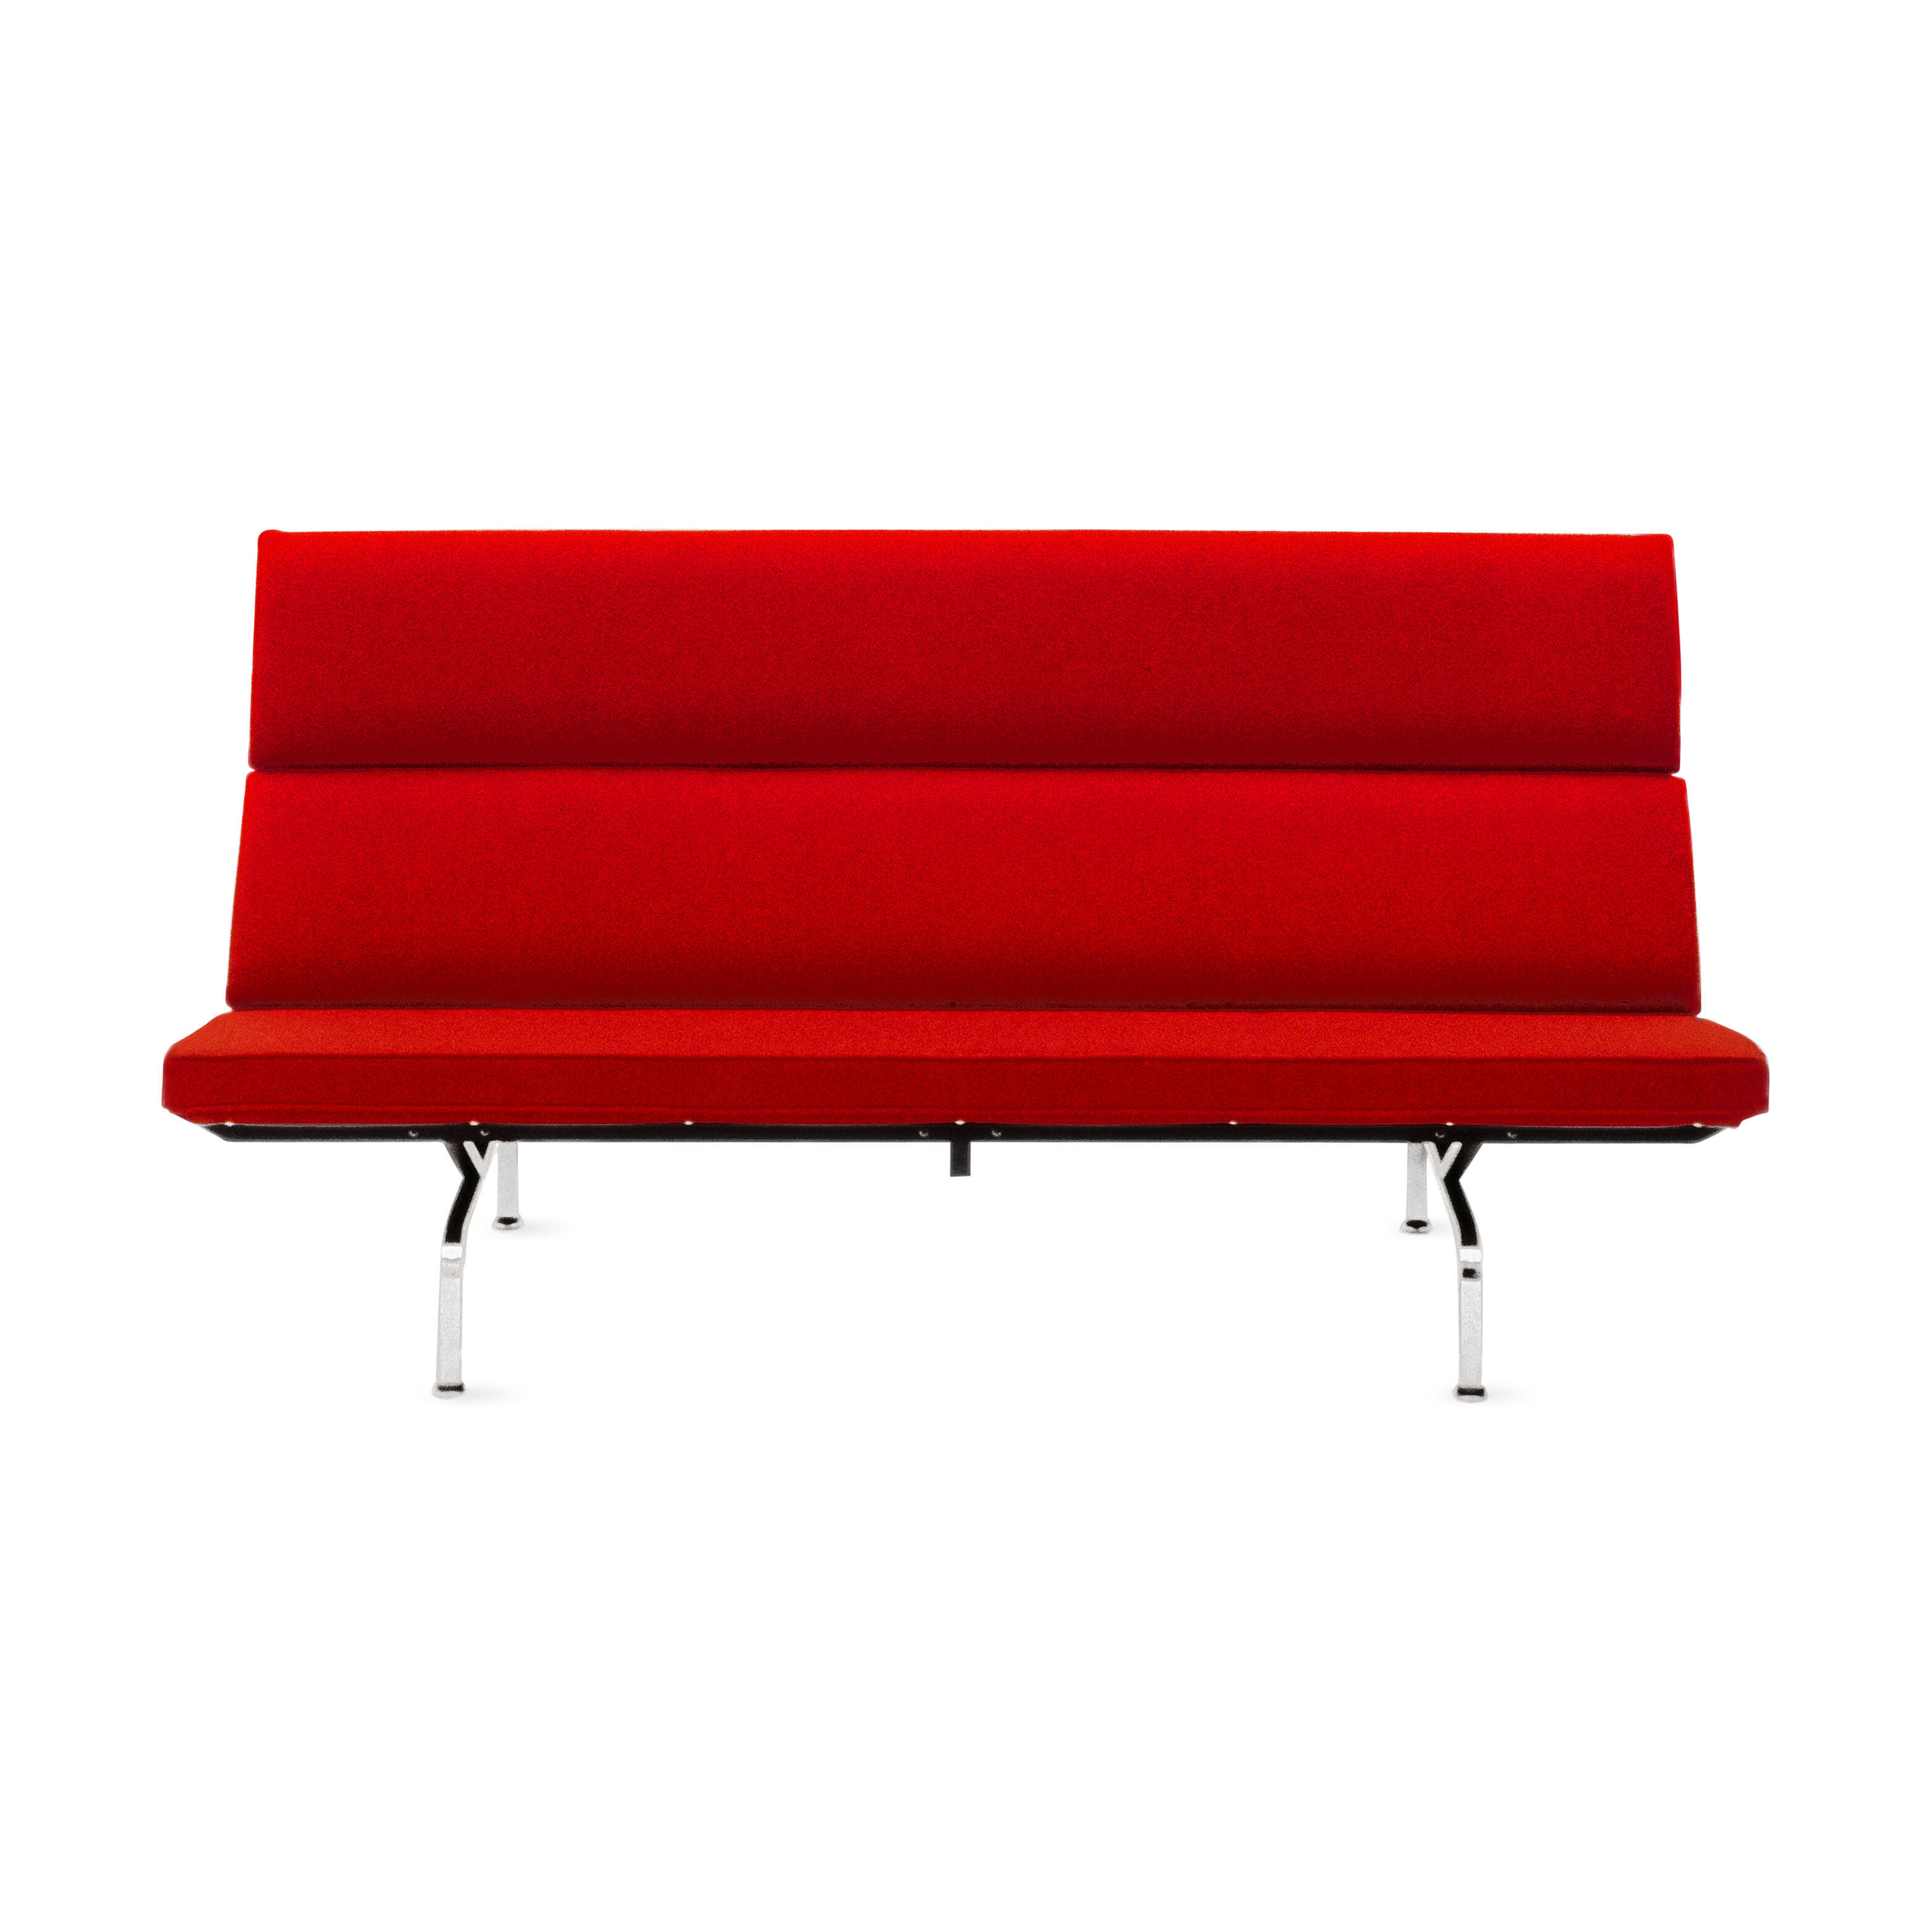 eames sofa compact the chair company uk moma design store in color